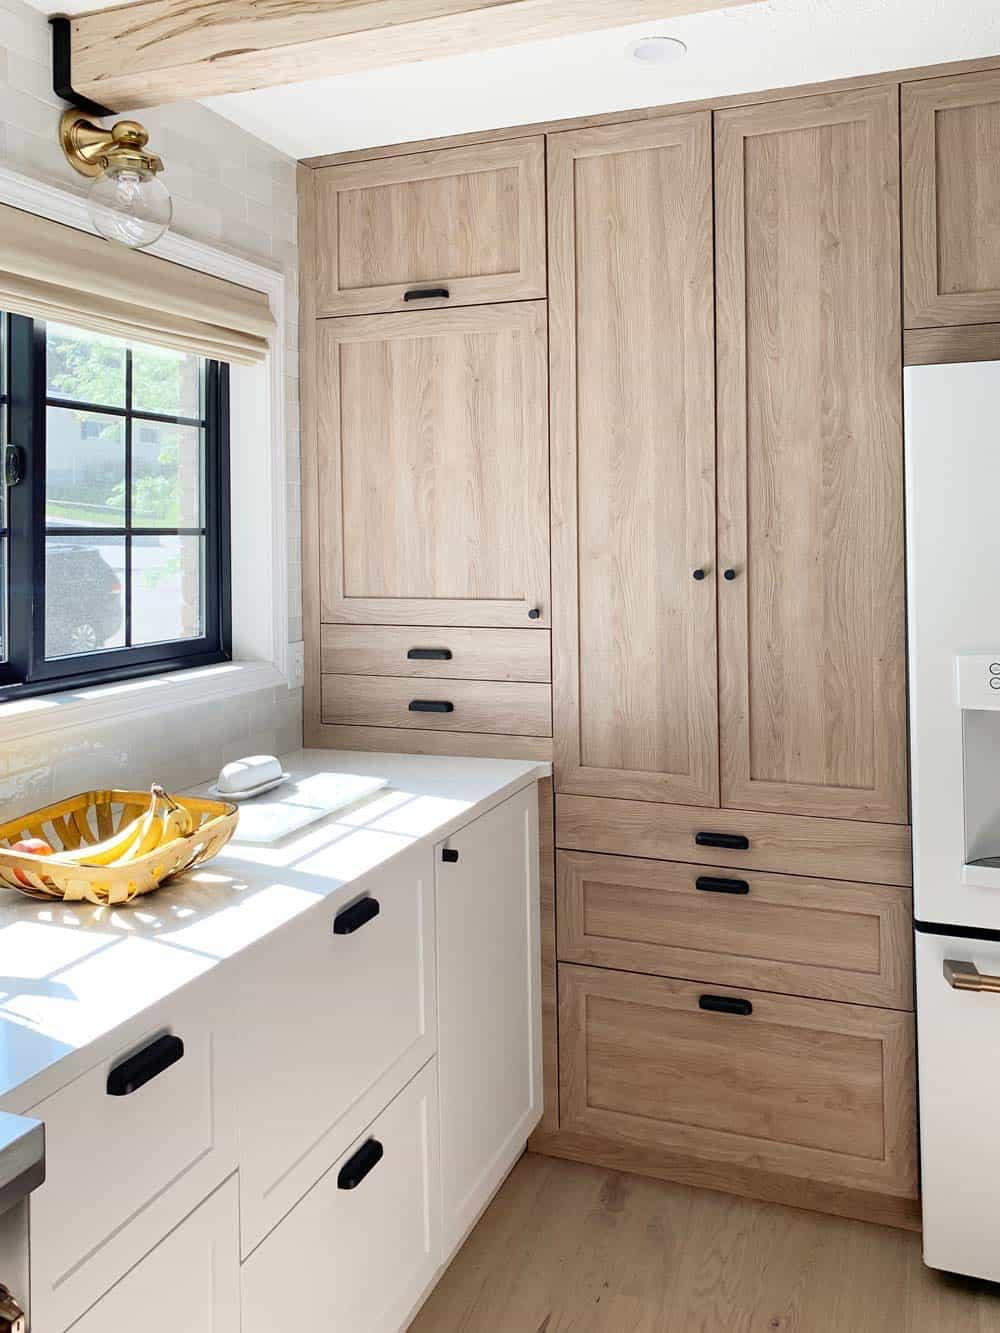 Light wood toned kitchen cabinets with matching woven wood shade in window.